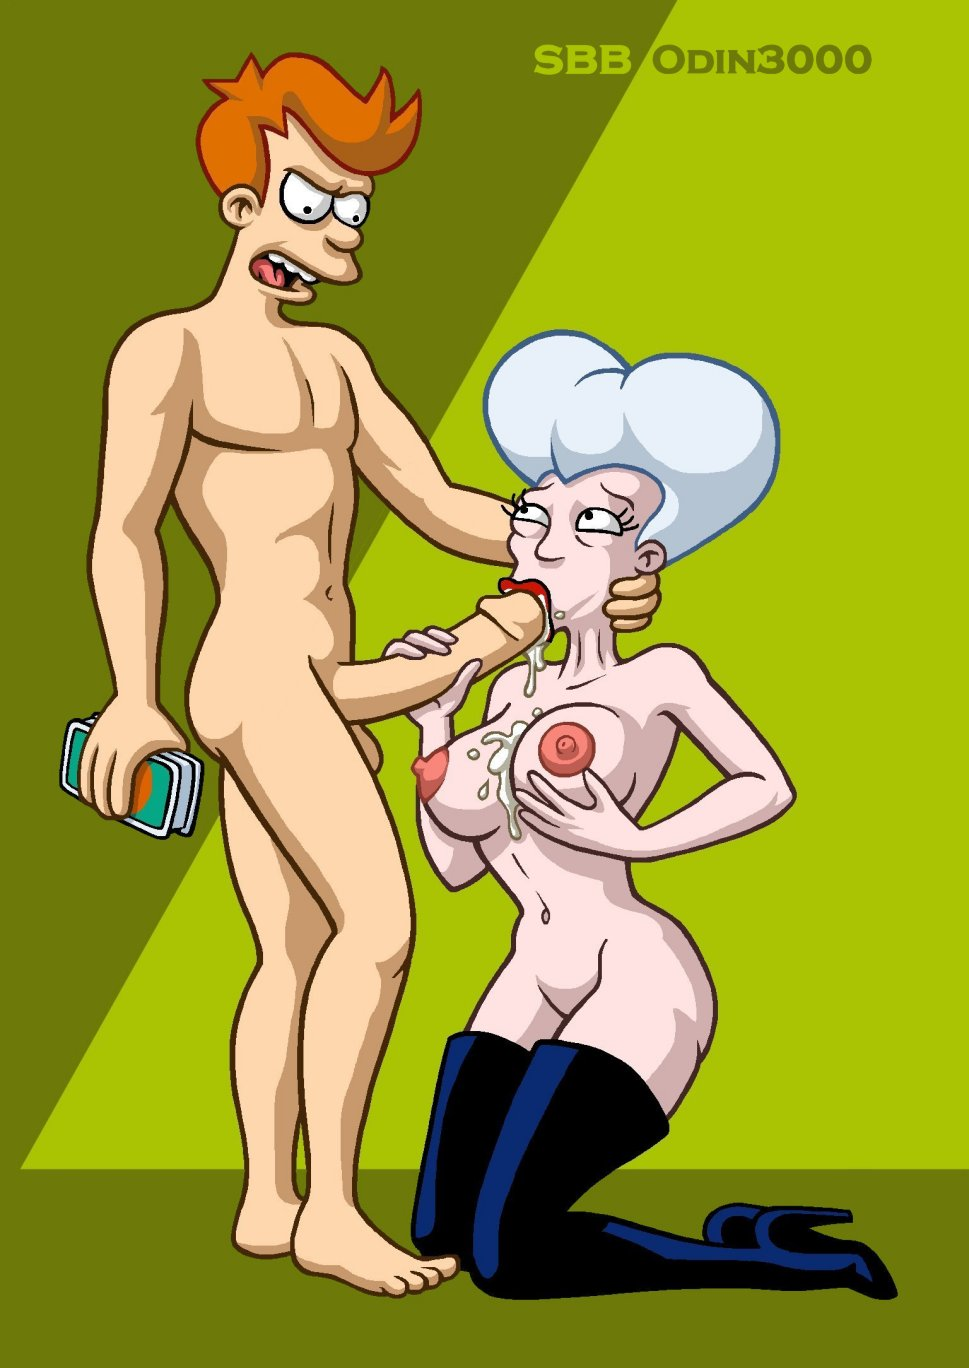 Futurama mom rule 34 nude video